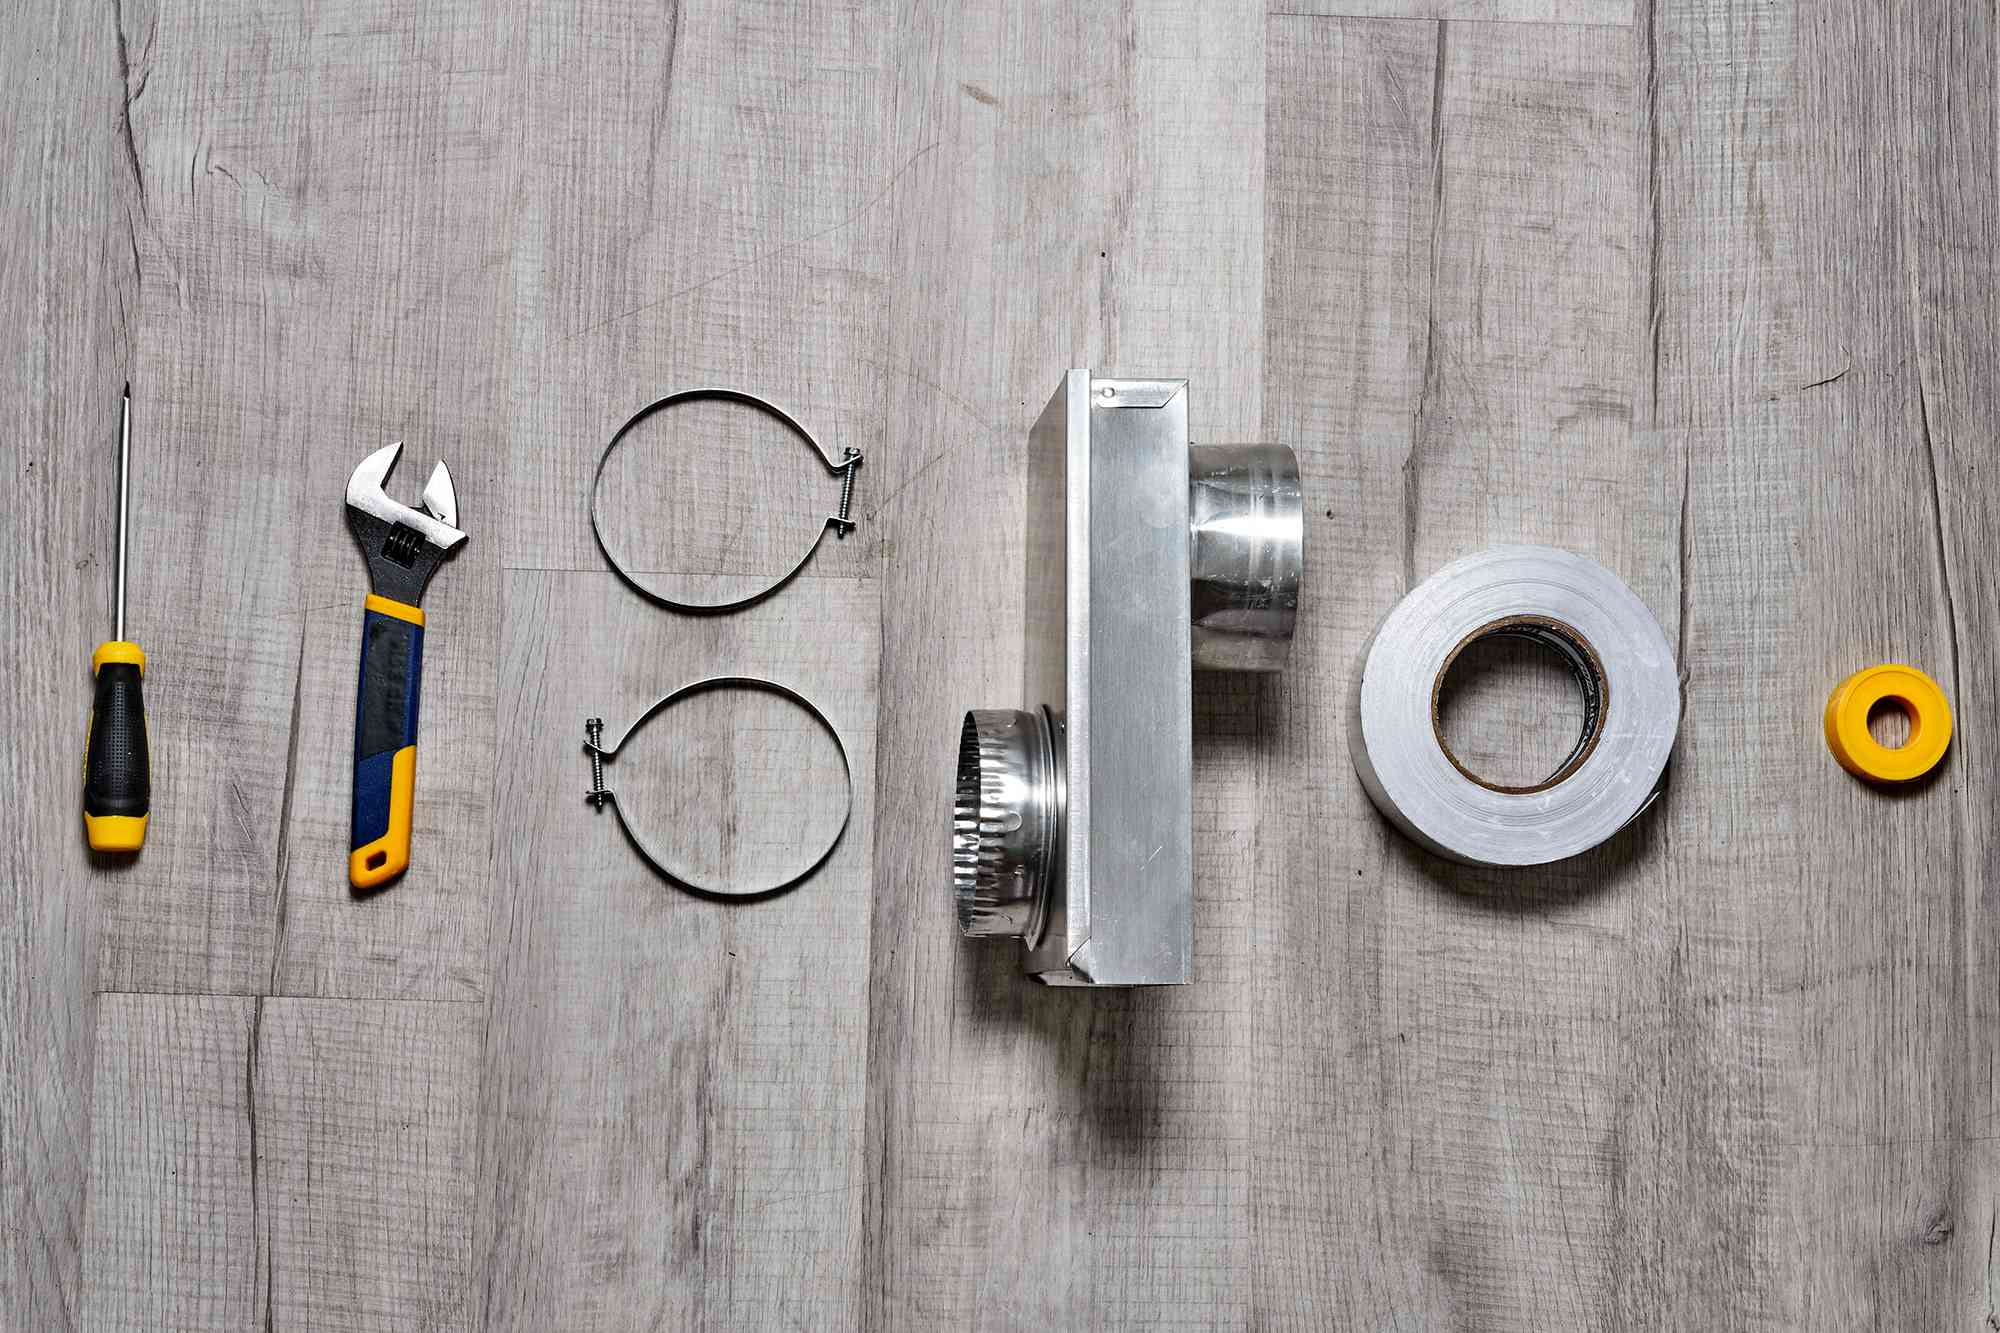 Materials and tools to install a dryer vent in a tight space